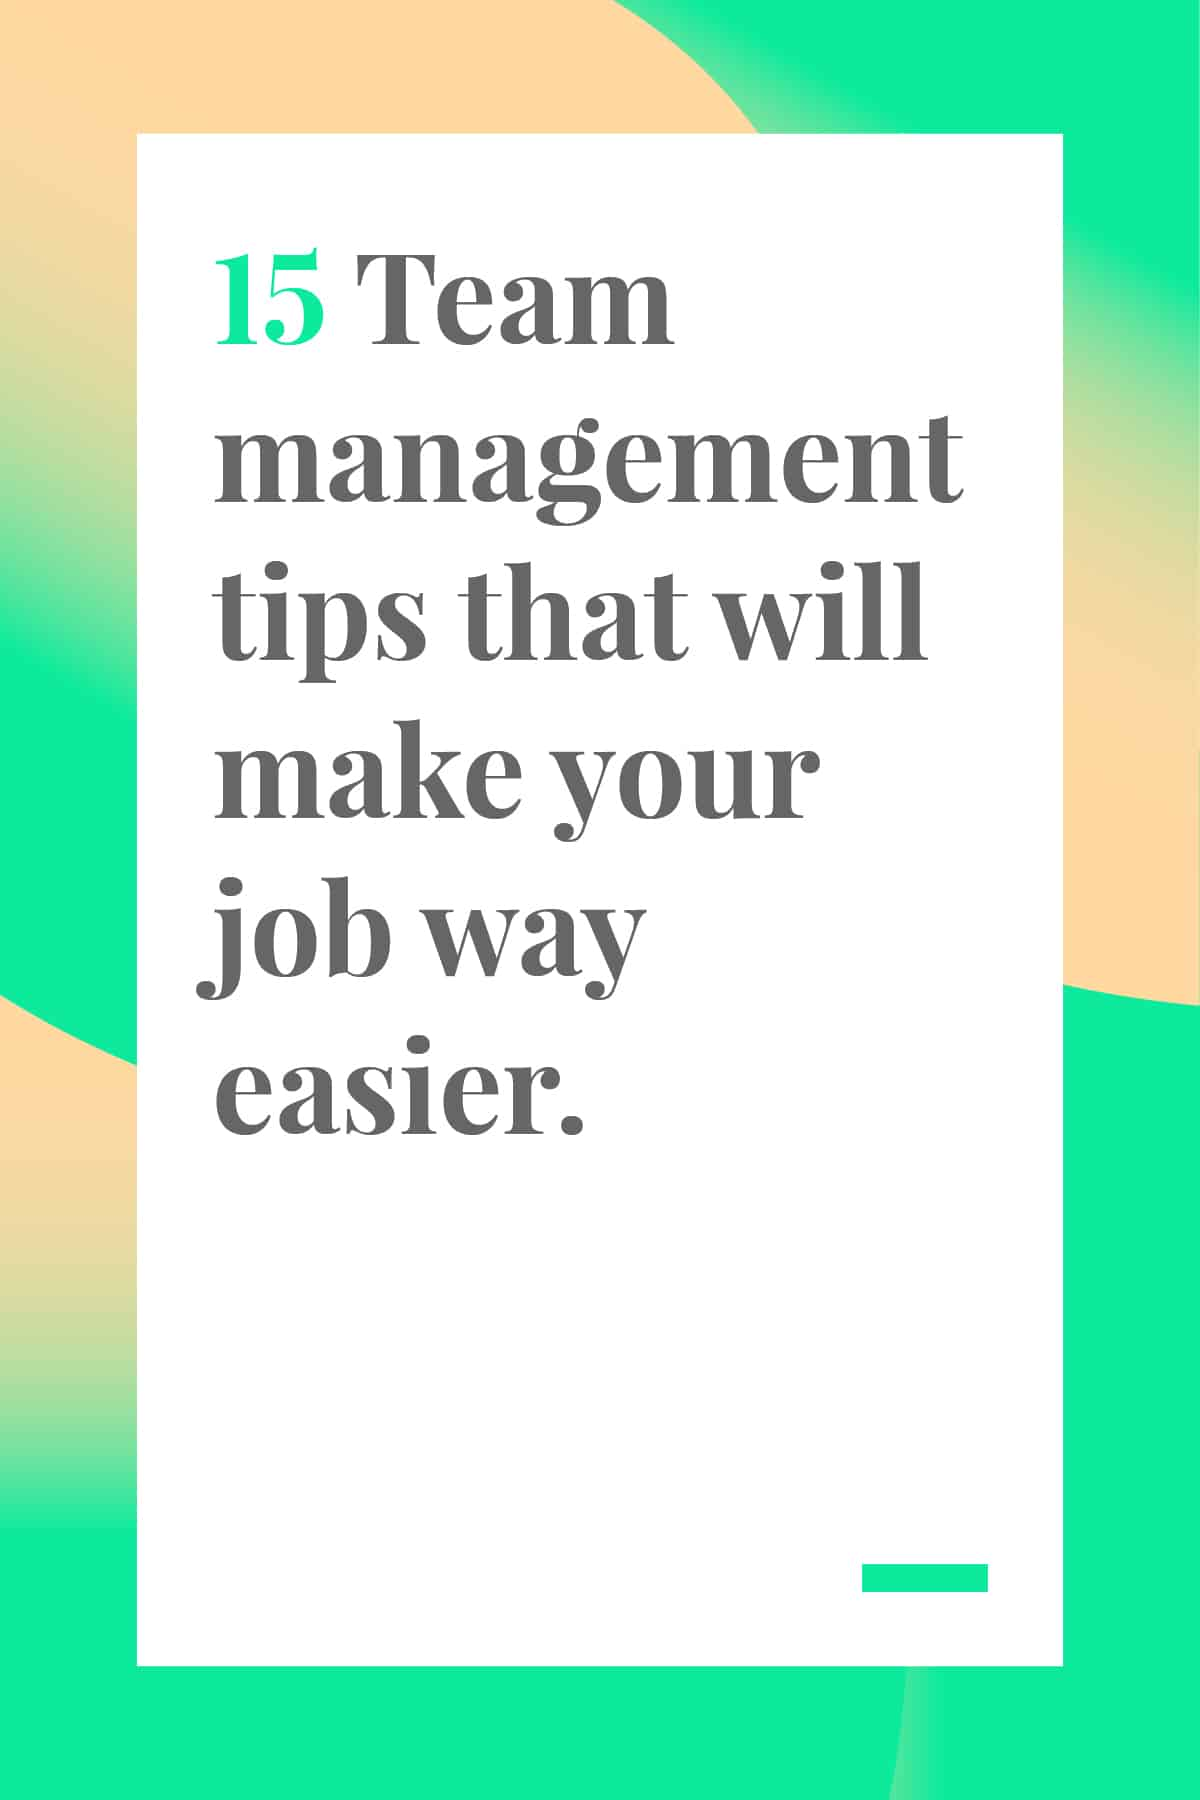 Simplify your management strategy with these team management tips to help you develop talent, lead your team, and get better results. #leadership